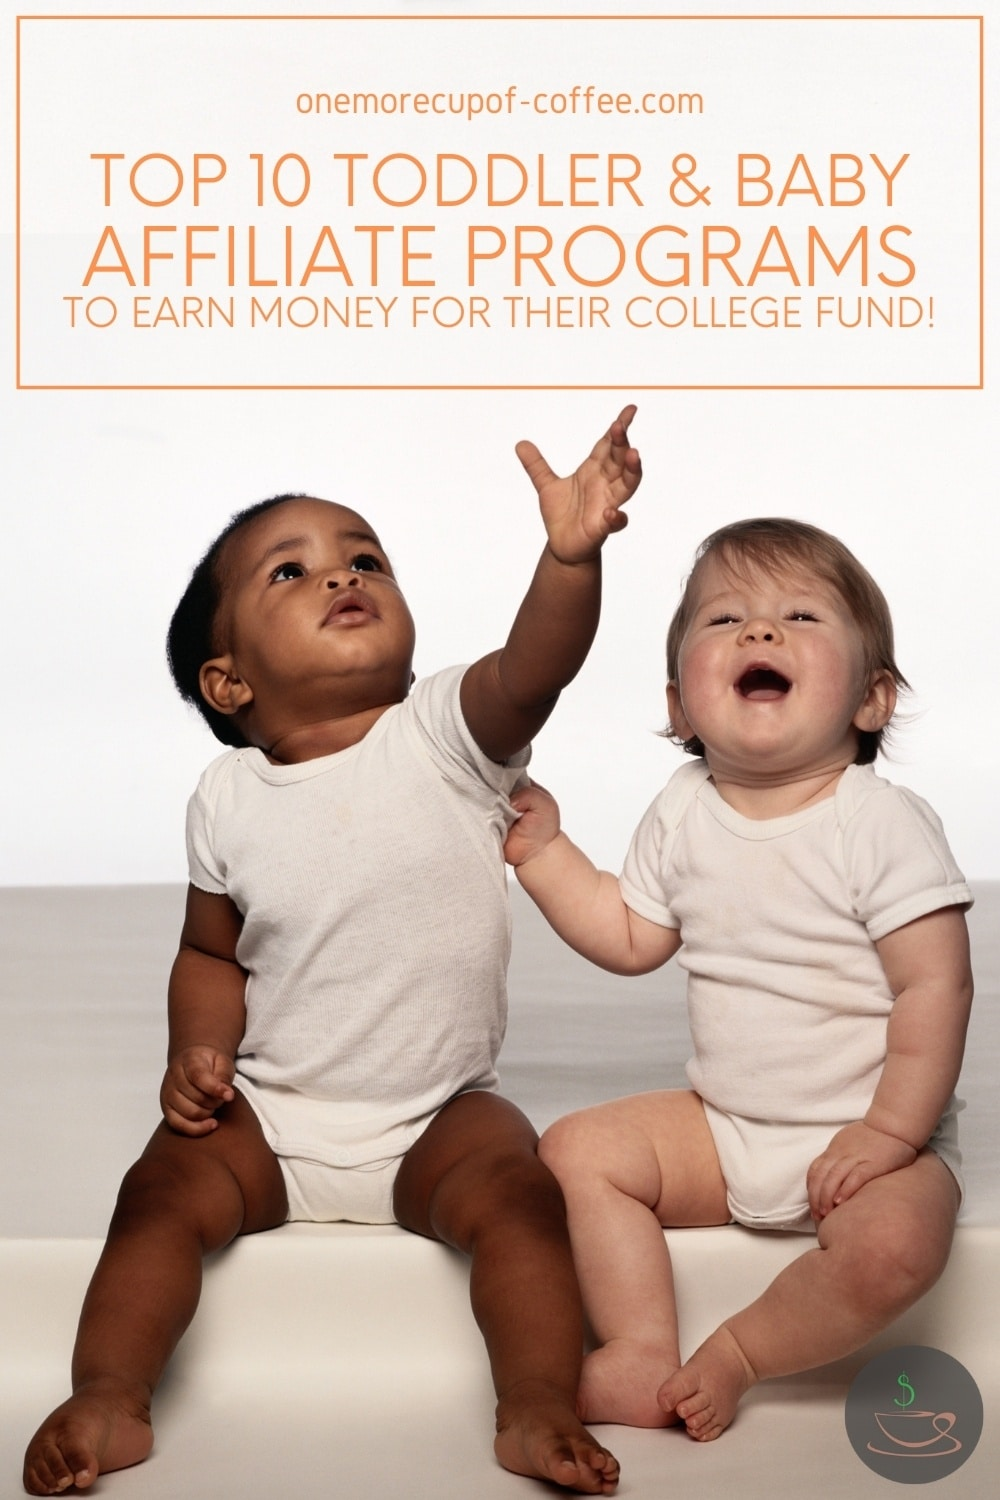 """a couple of toddlers in white onesies, seated while looking up, with text overlay """"Top 10 Toddler & Baby Affiliate Programs To Earn Money For Their College Fund"""""""